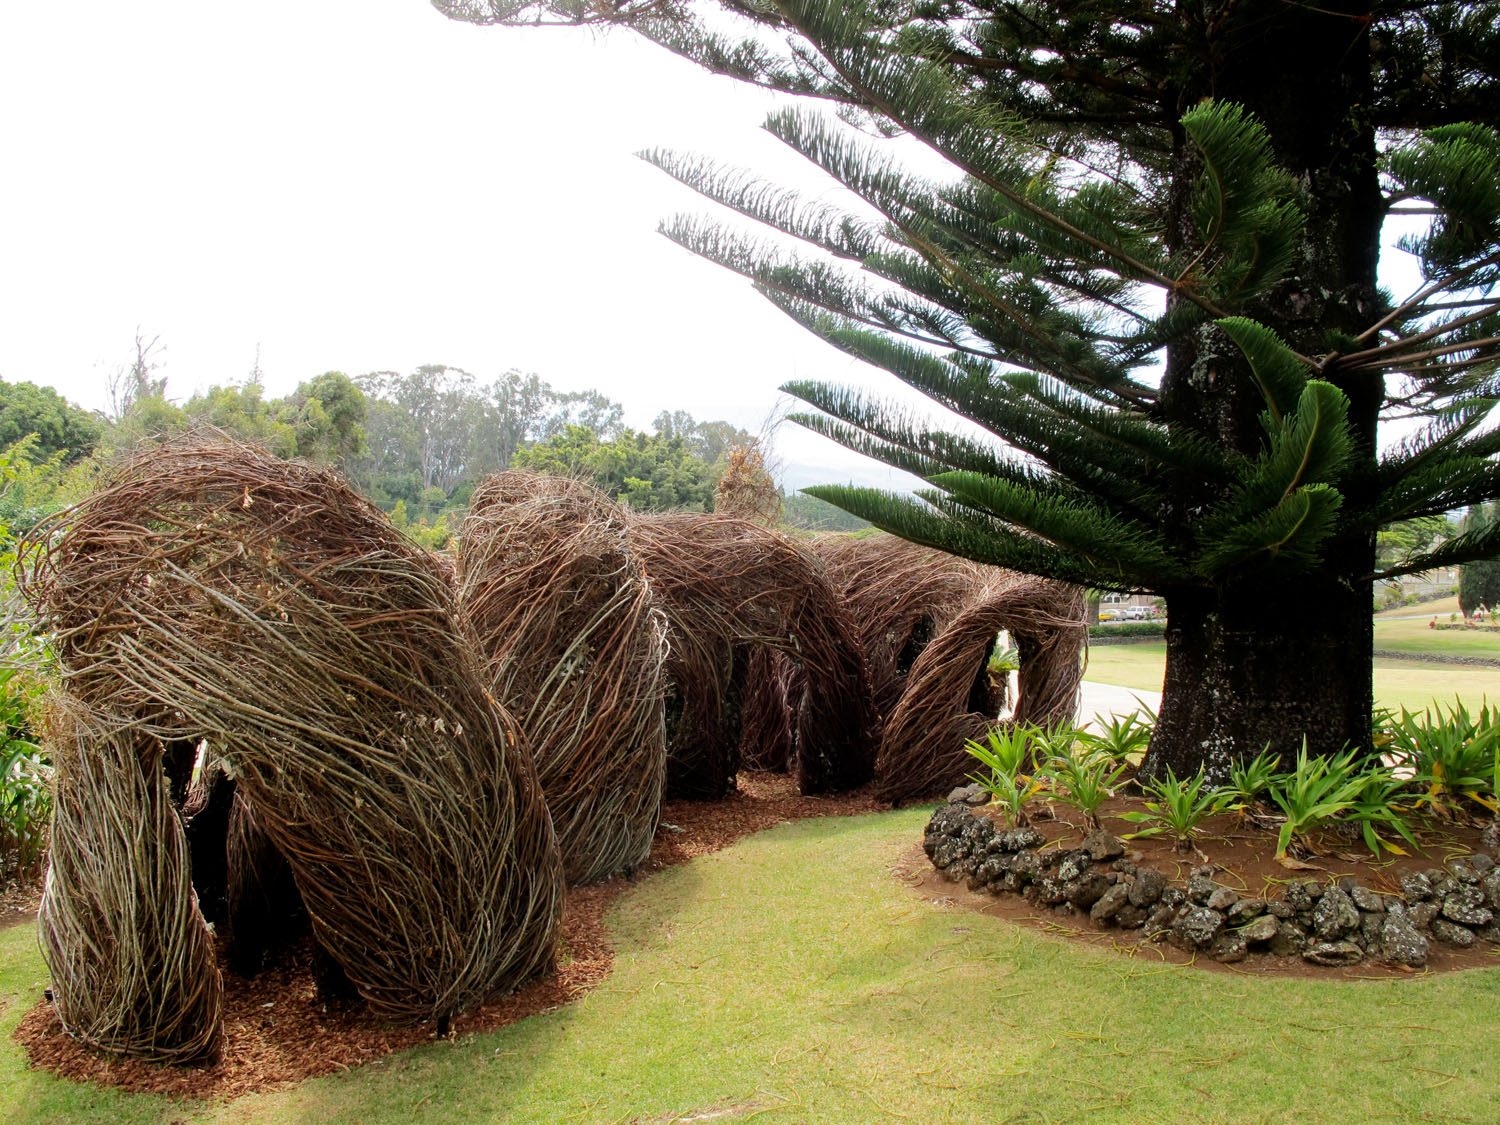 On the Wild Side by Patrick Dougherty